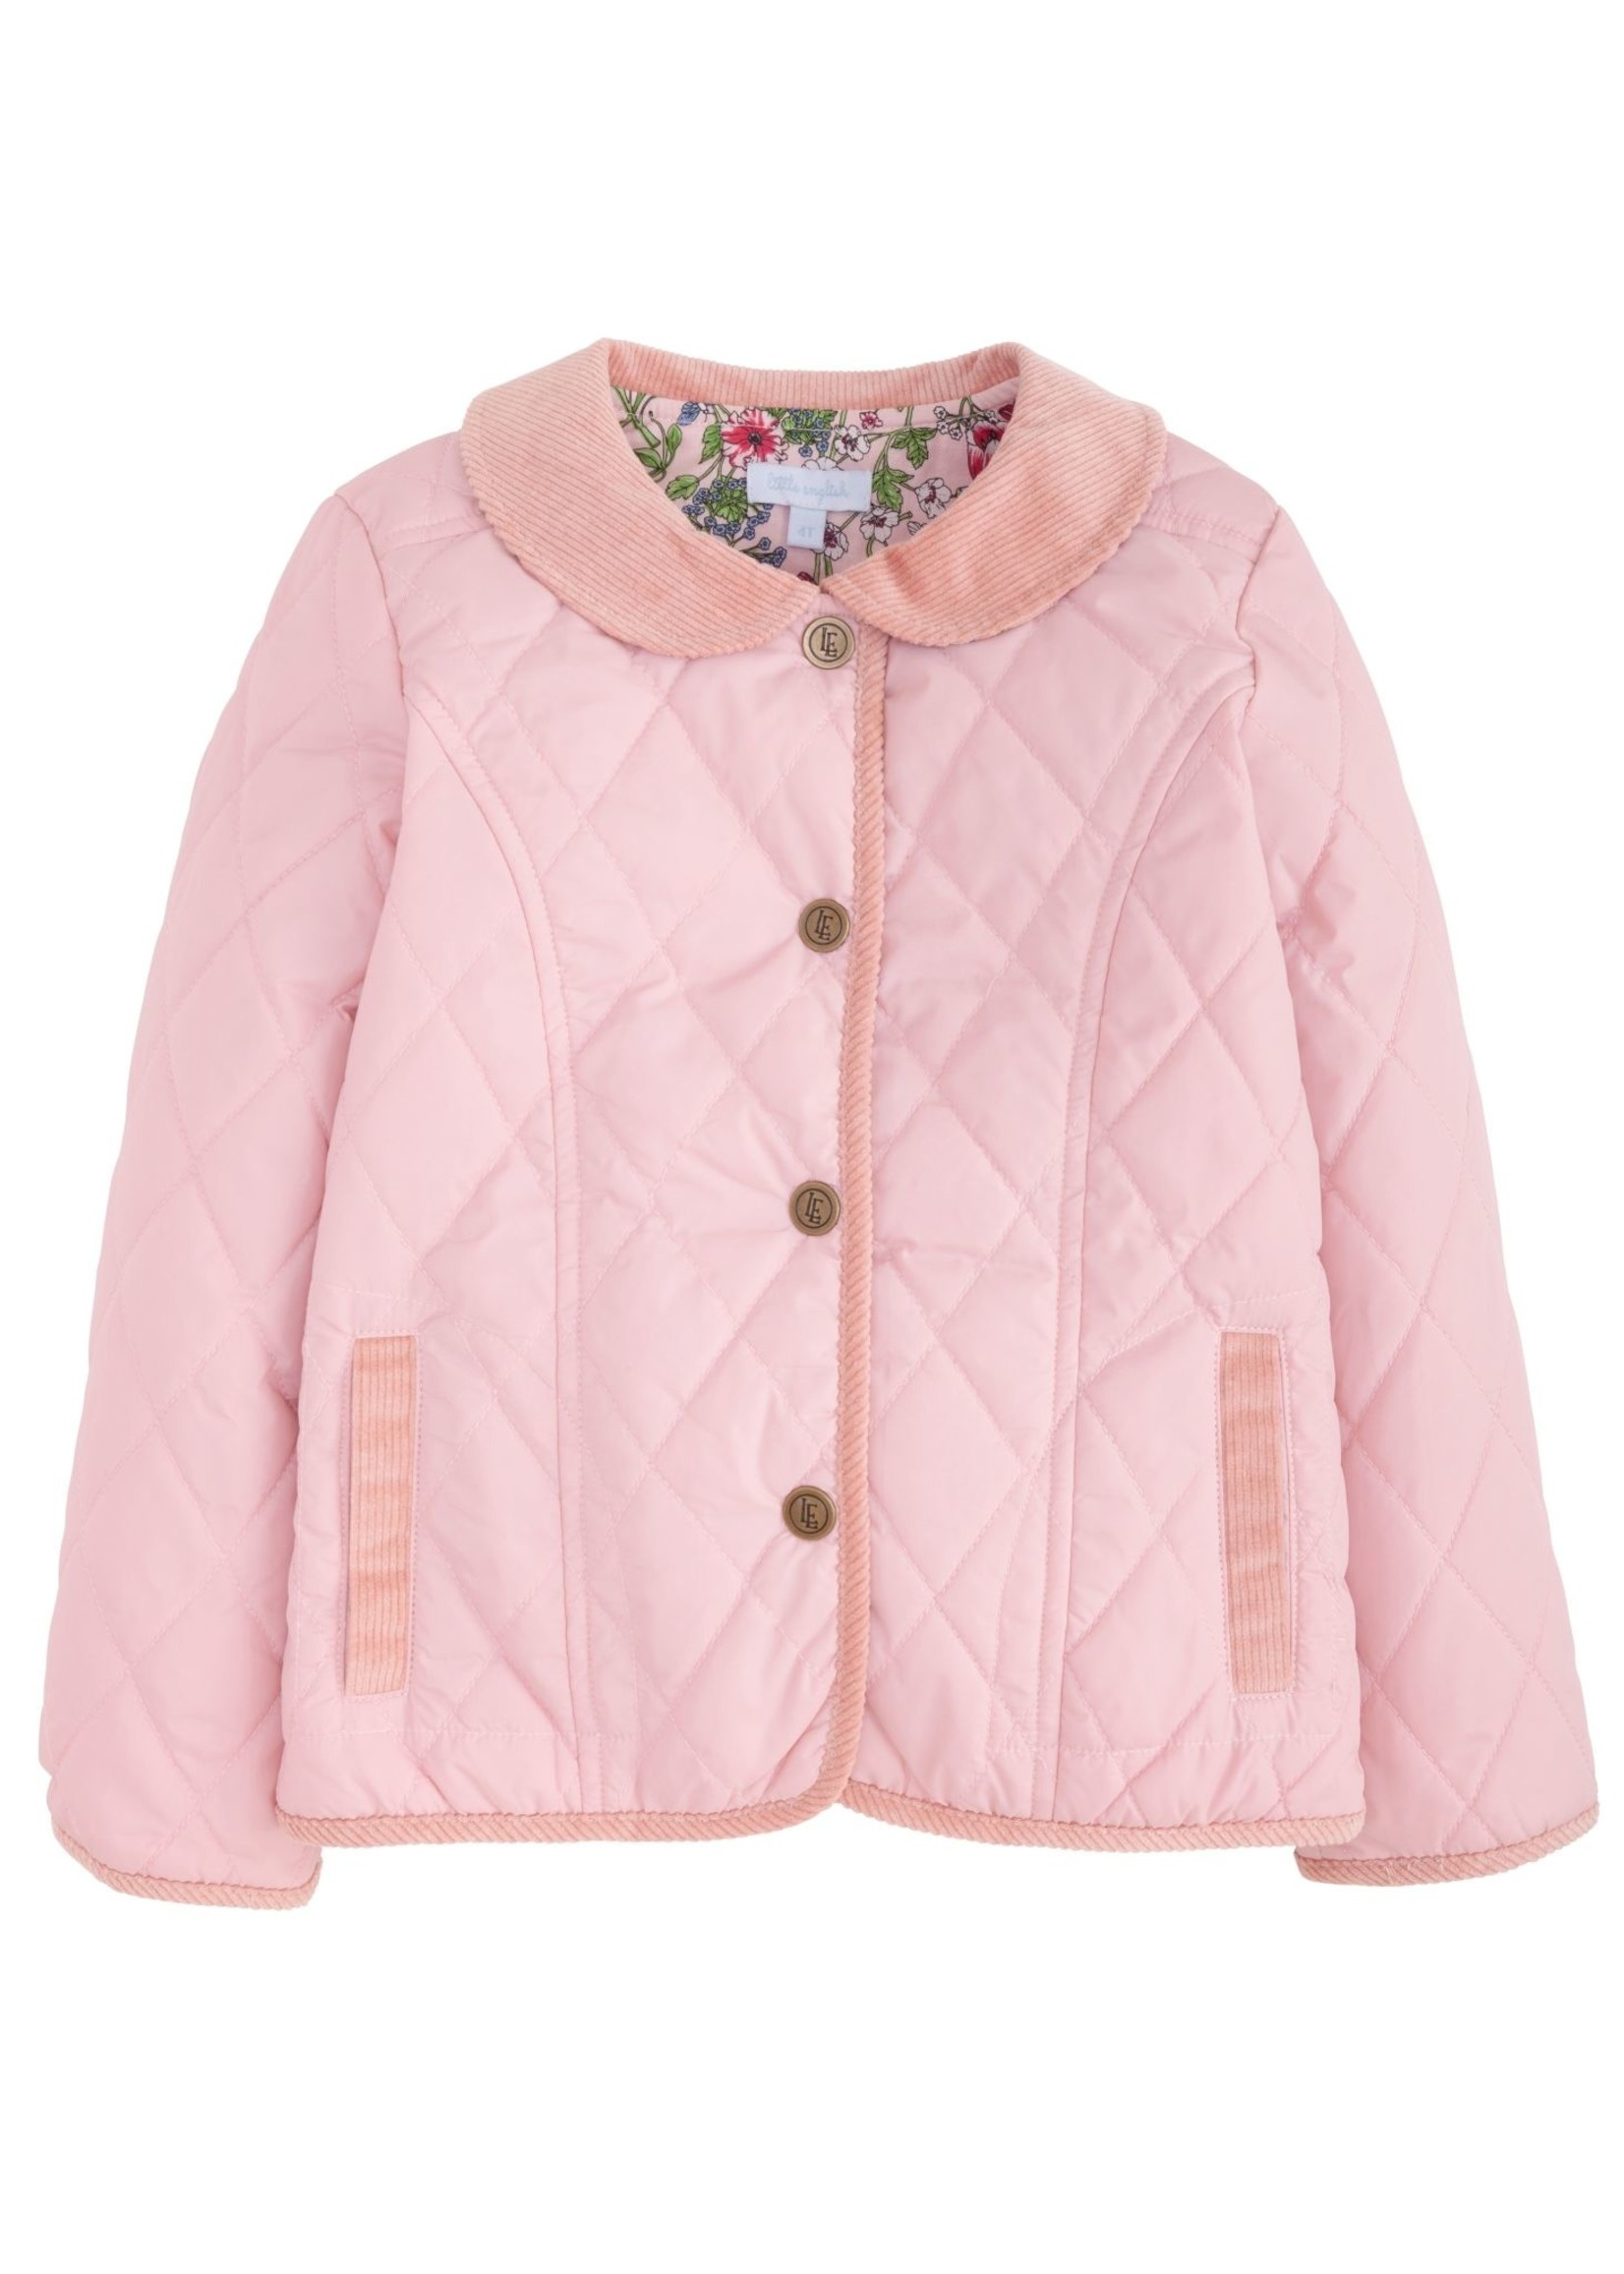 Little English Girl's Classic Quilted Coat - Dusty Pink